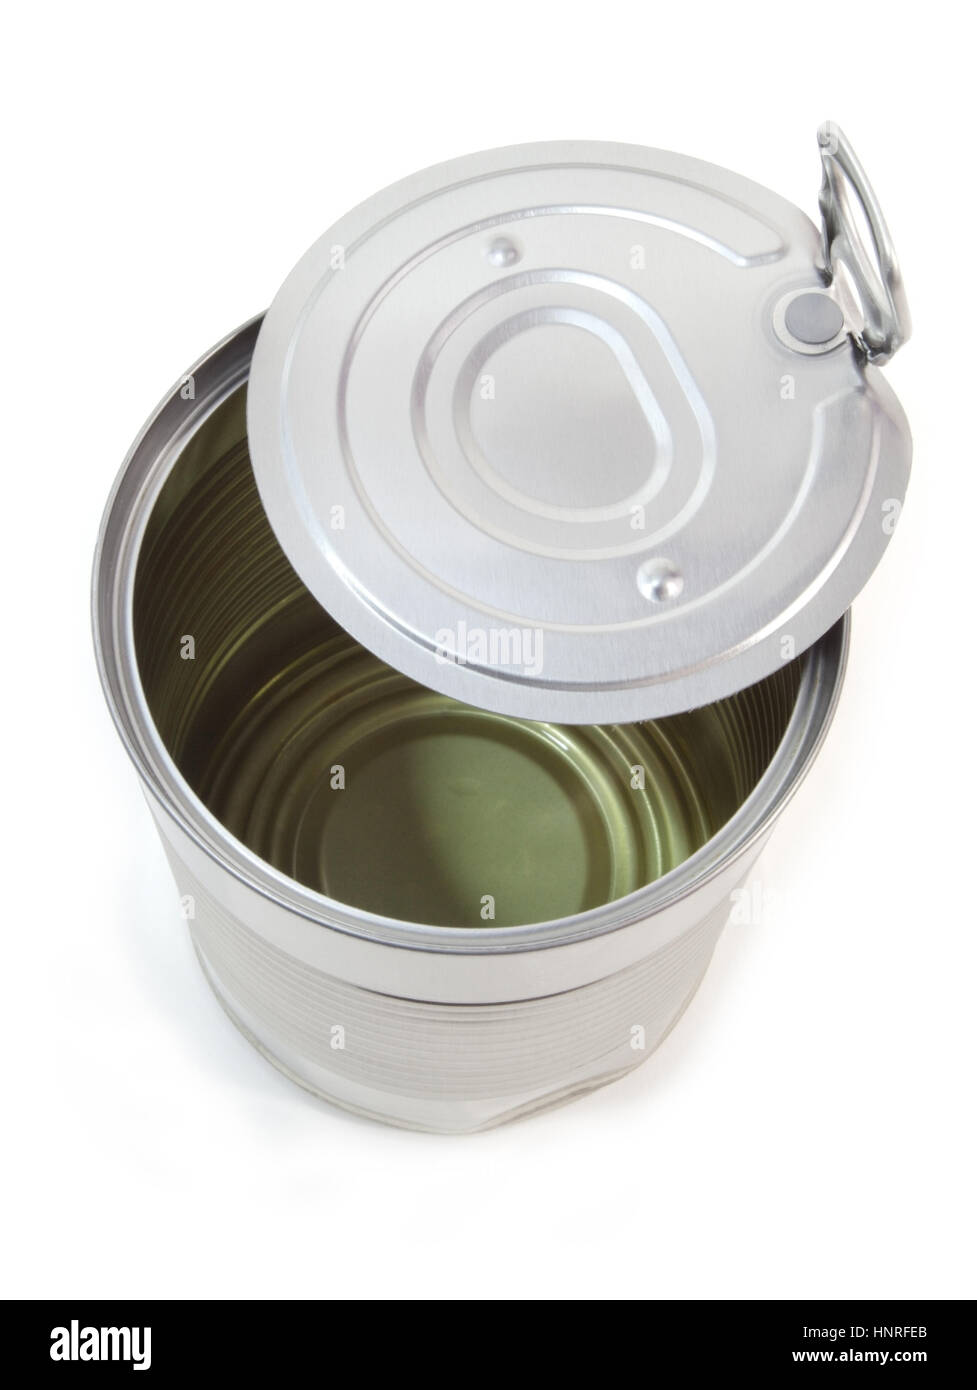 Metal can with pull tab top. - Stock Image